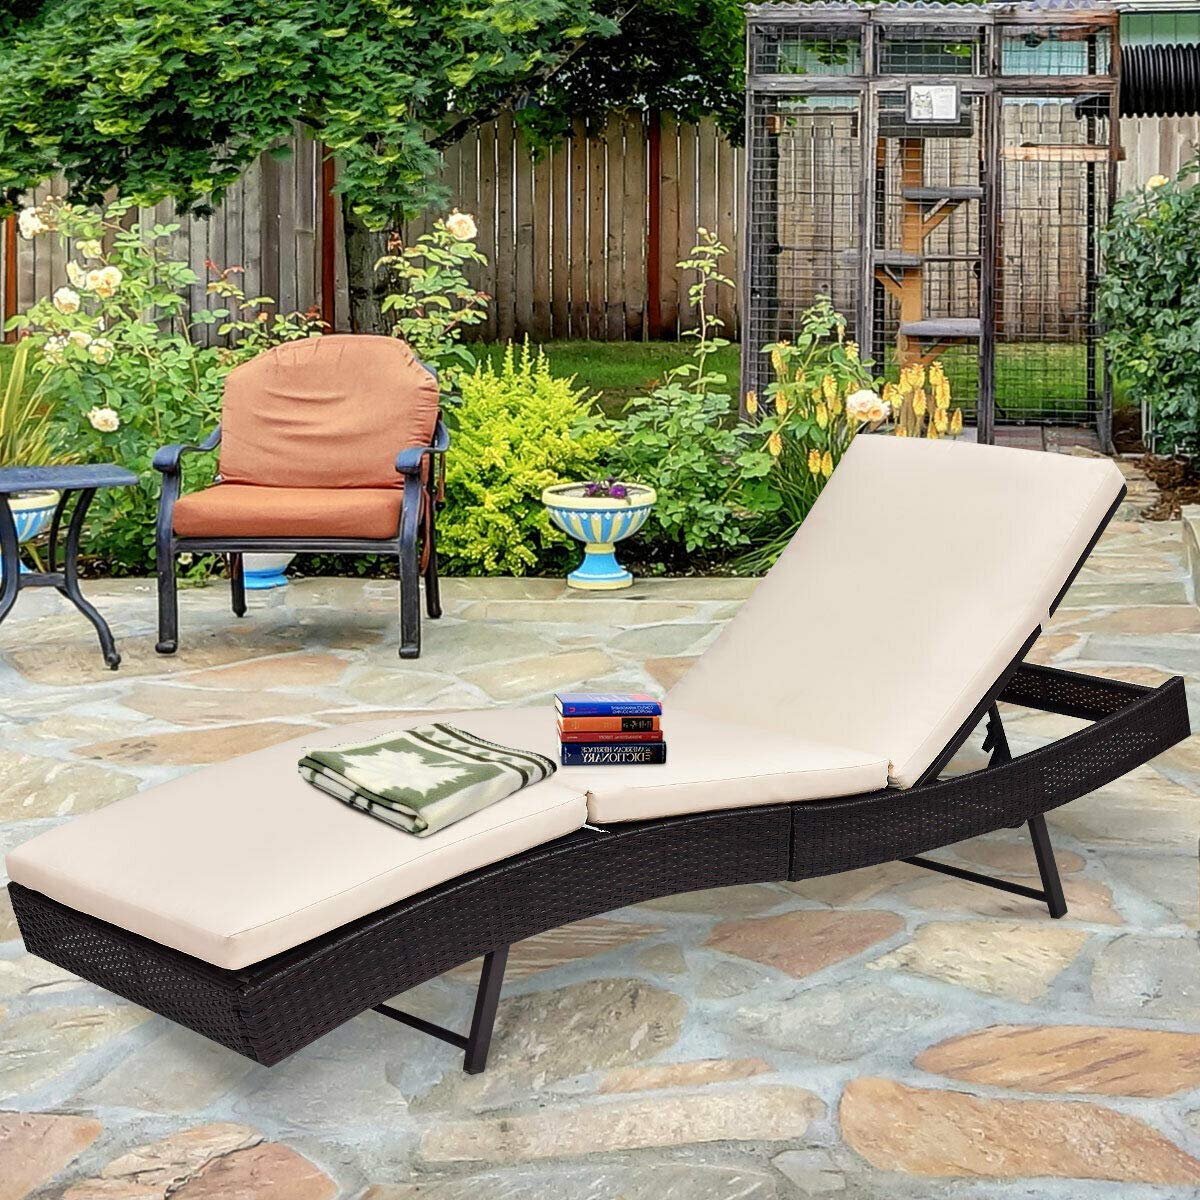 Tangkula Patio Reclining Chaise Lounge, Outdoor Beach Pool Yard Porch Wicker Rattan Adjustable Backrest Lounger Chair by Tangkula